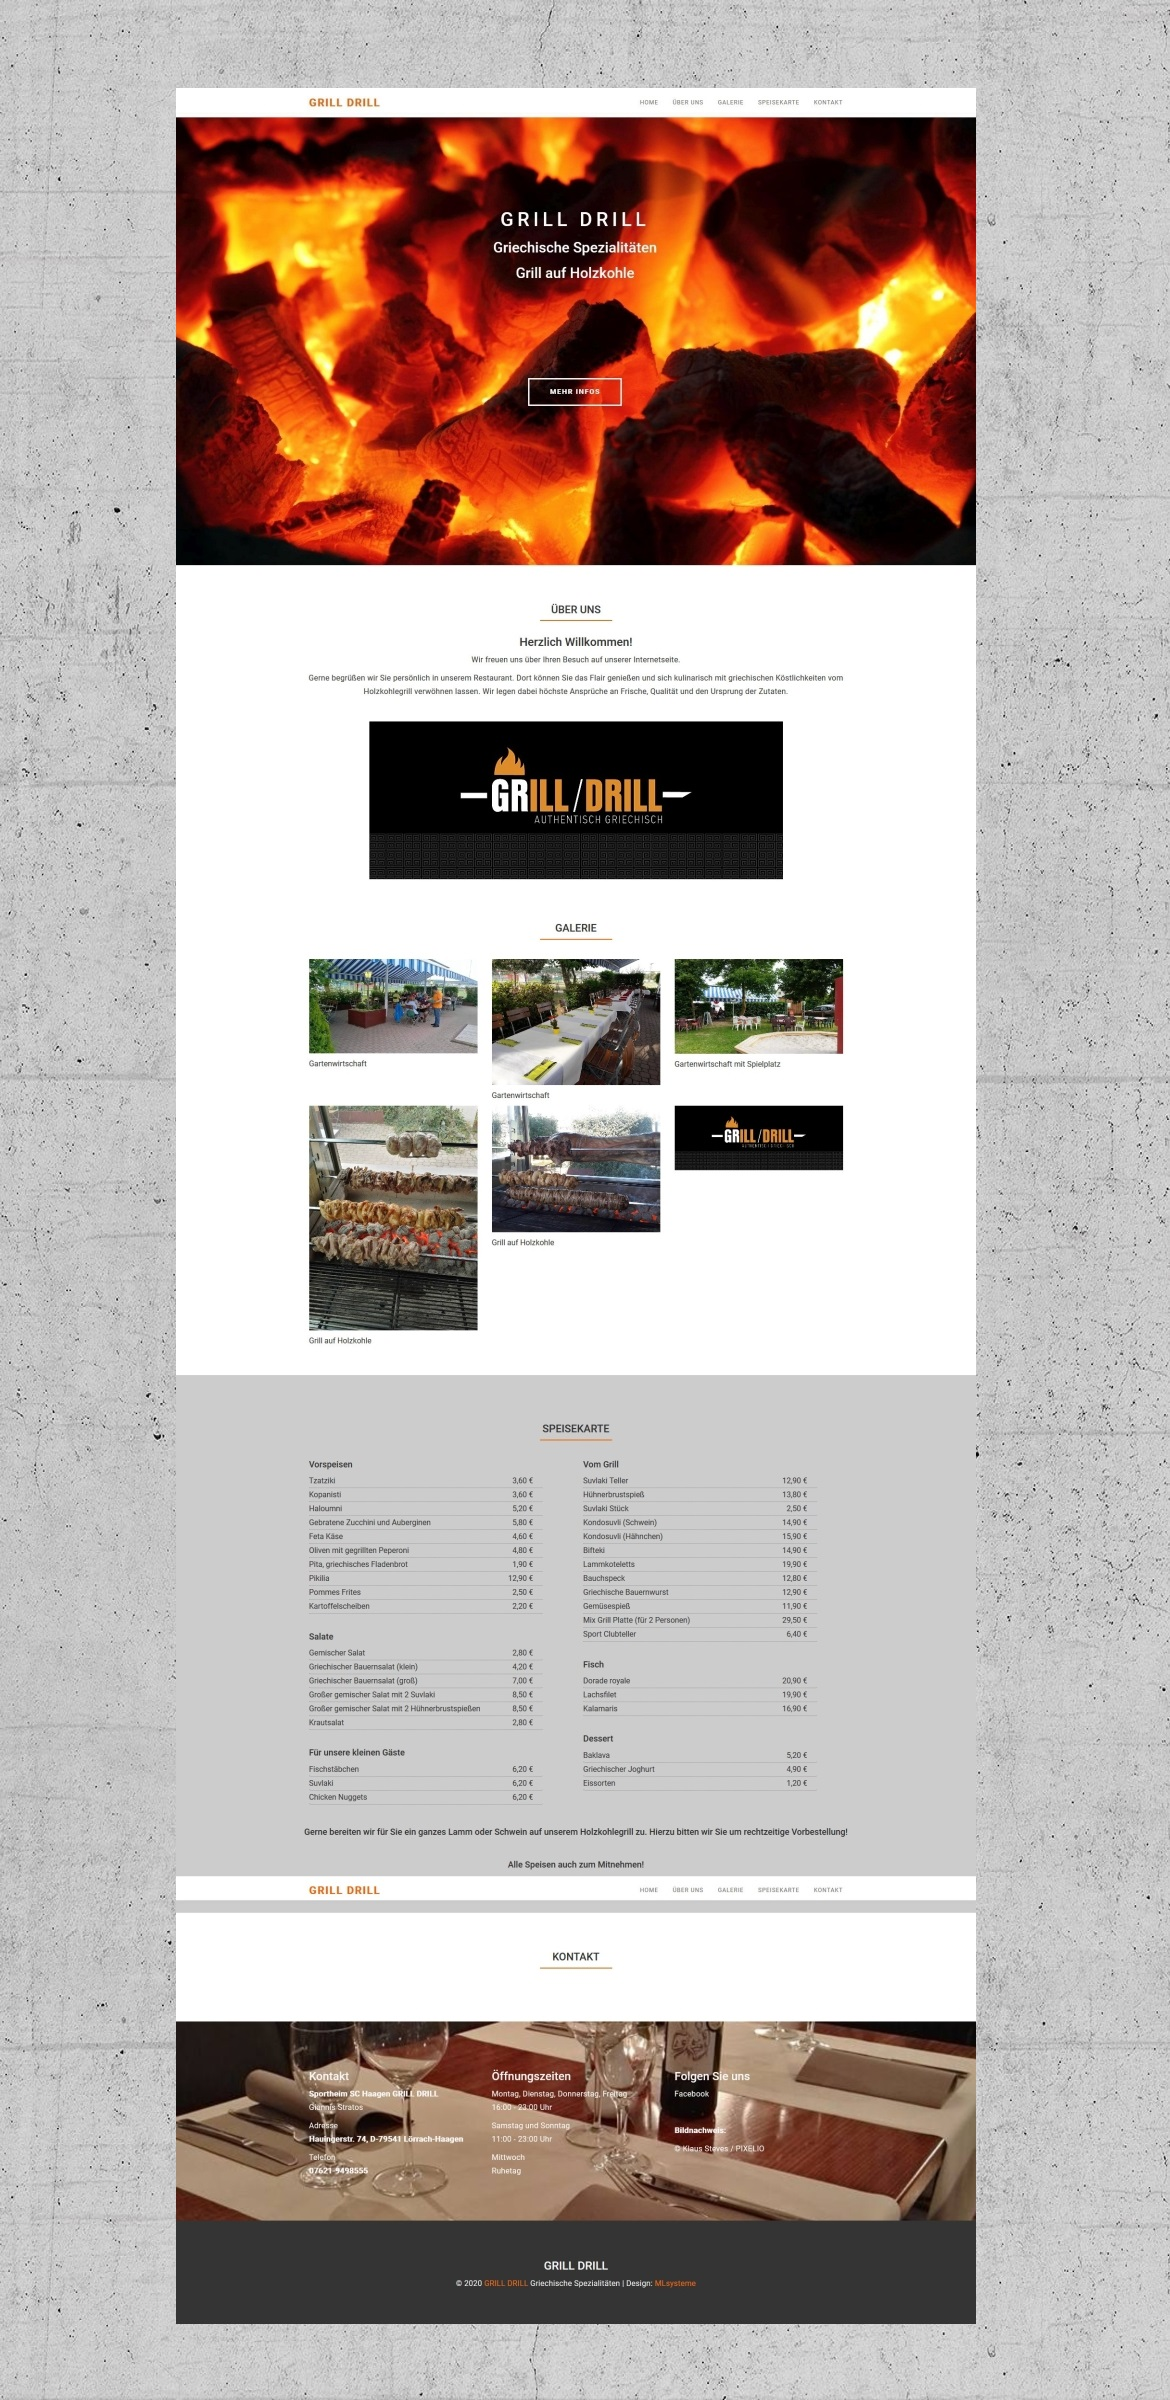 Webdesign-Referenz: GRILL-DRILL